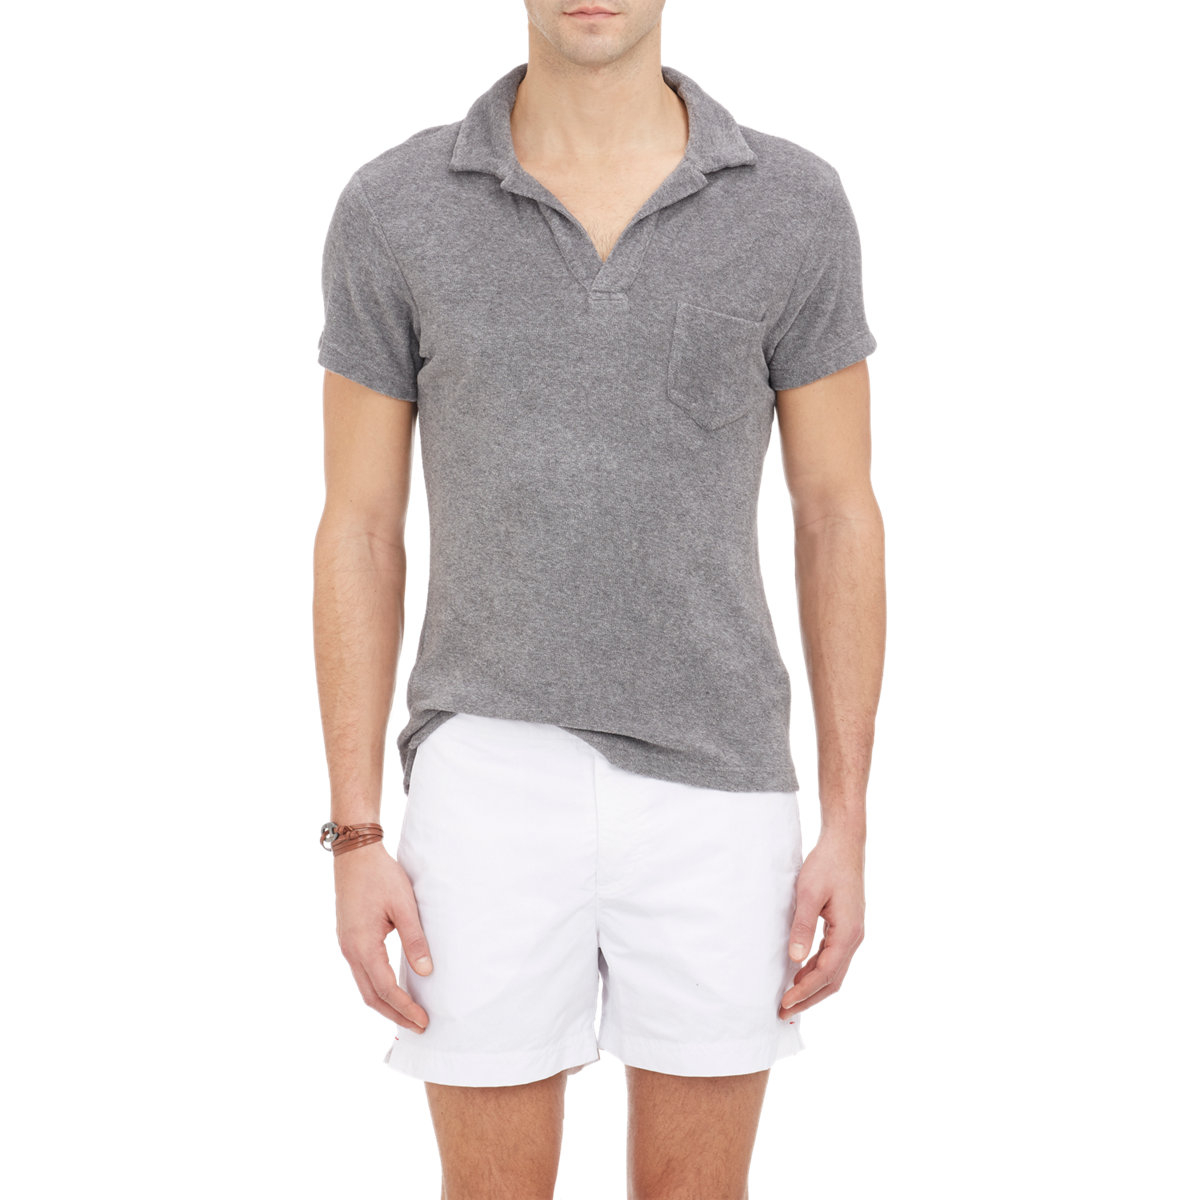 a4f43b721 Orlebar Brown Men's Terry Cloth Polo Shirt in Gray for Men - Lyst